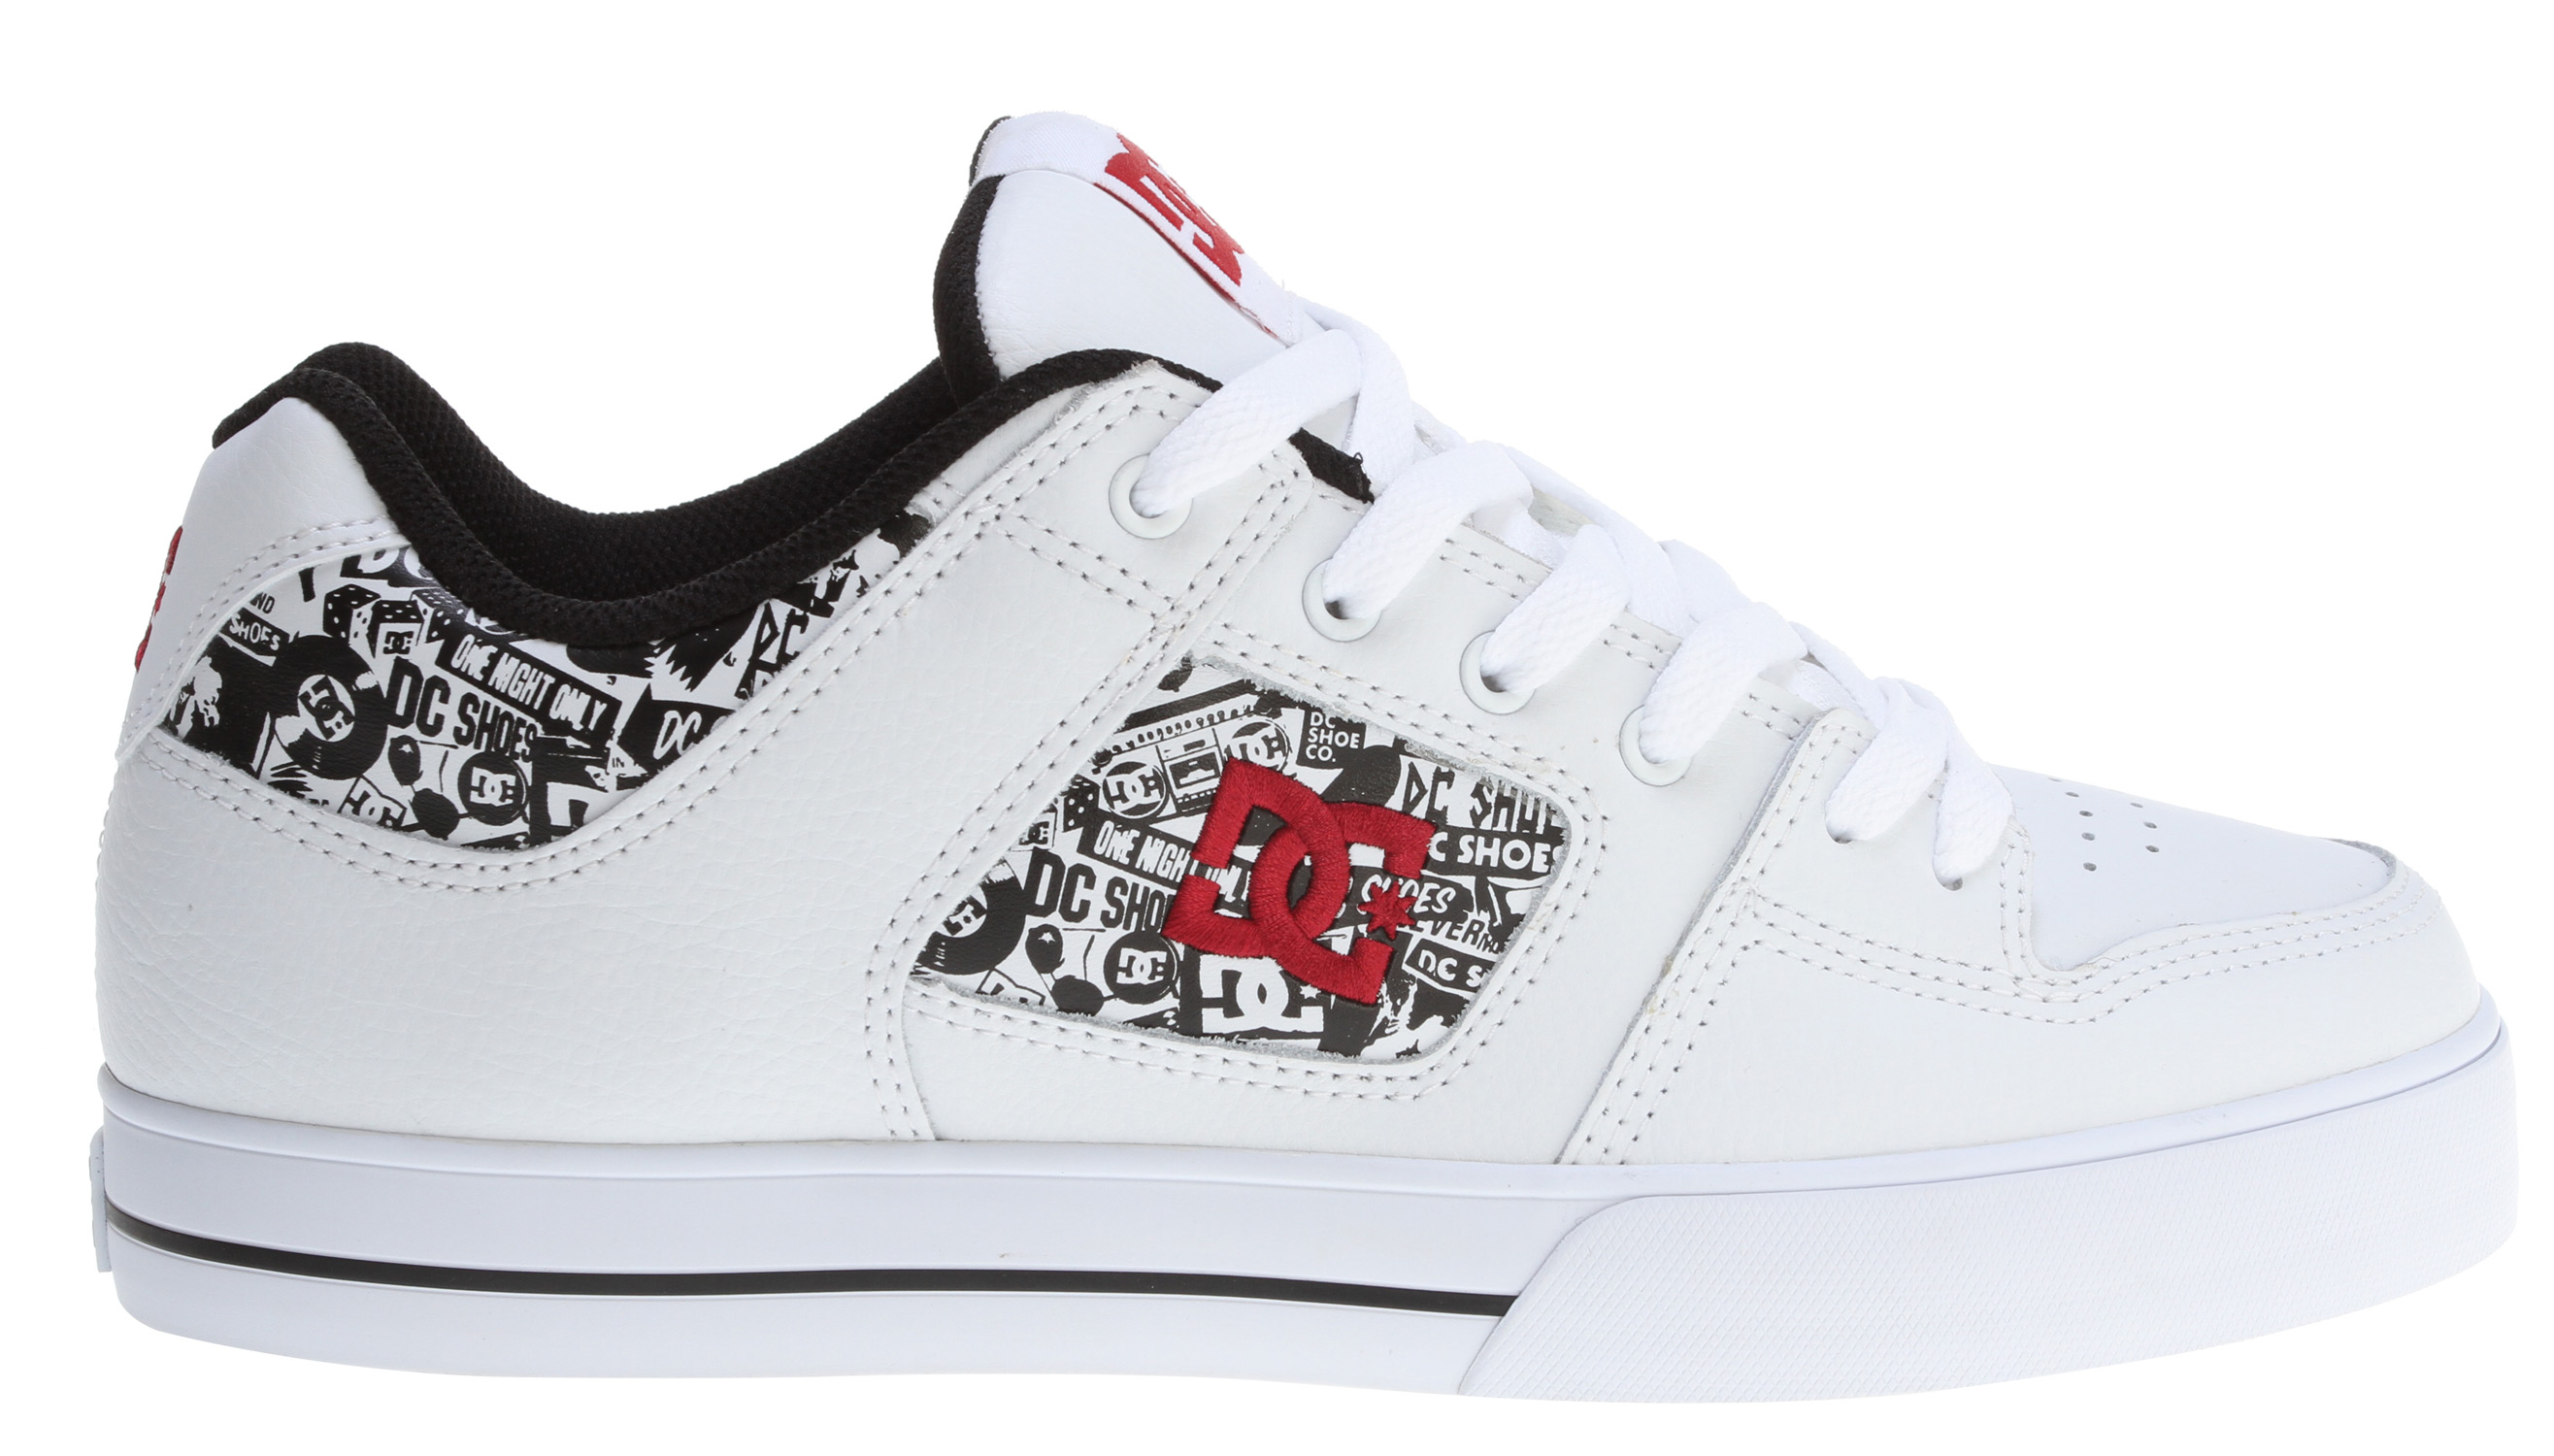 Skateboard Key Features of the DC Pure XE Skate Shoes: Heavy duty suede upper Soft resilient action leather Eyelets on medial side Metal eyelets and lace locks Foam padded tongue and collar Innovative DGT rubber bottom design for enhanced board control, feel, and durability Rubber toe wrap - $51.95